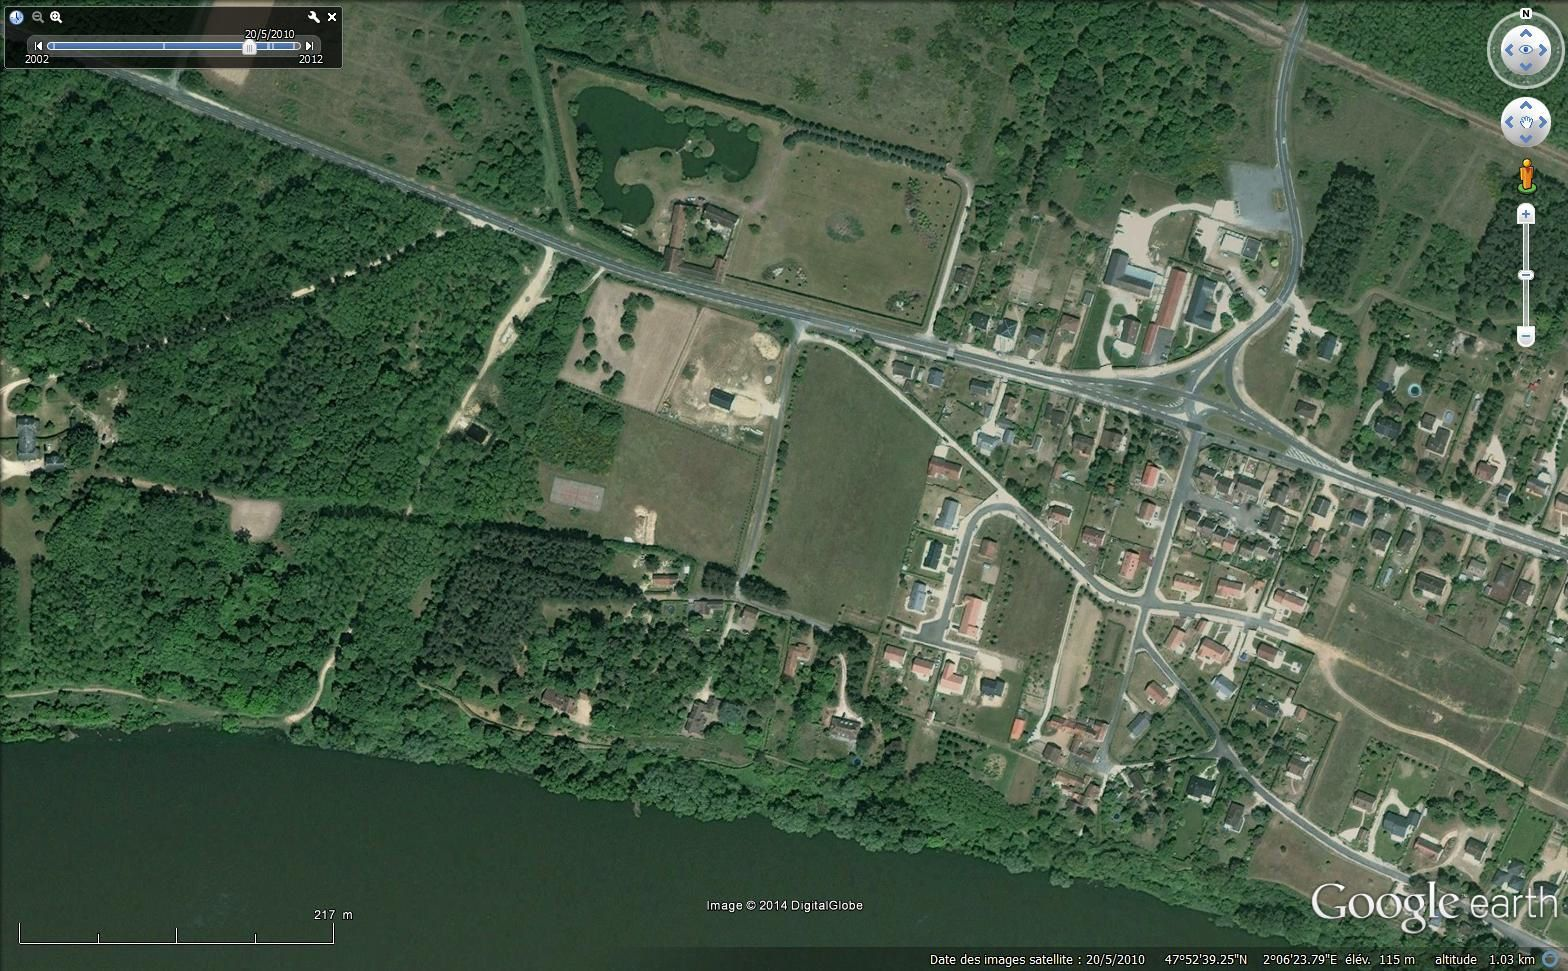 Les Vernelles (Google earth)